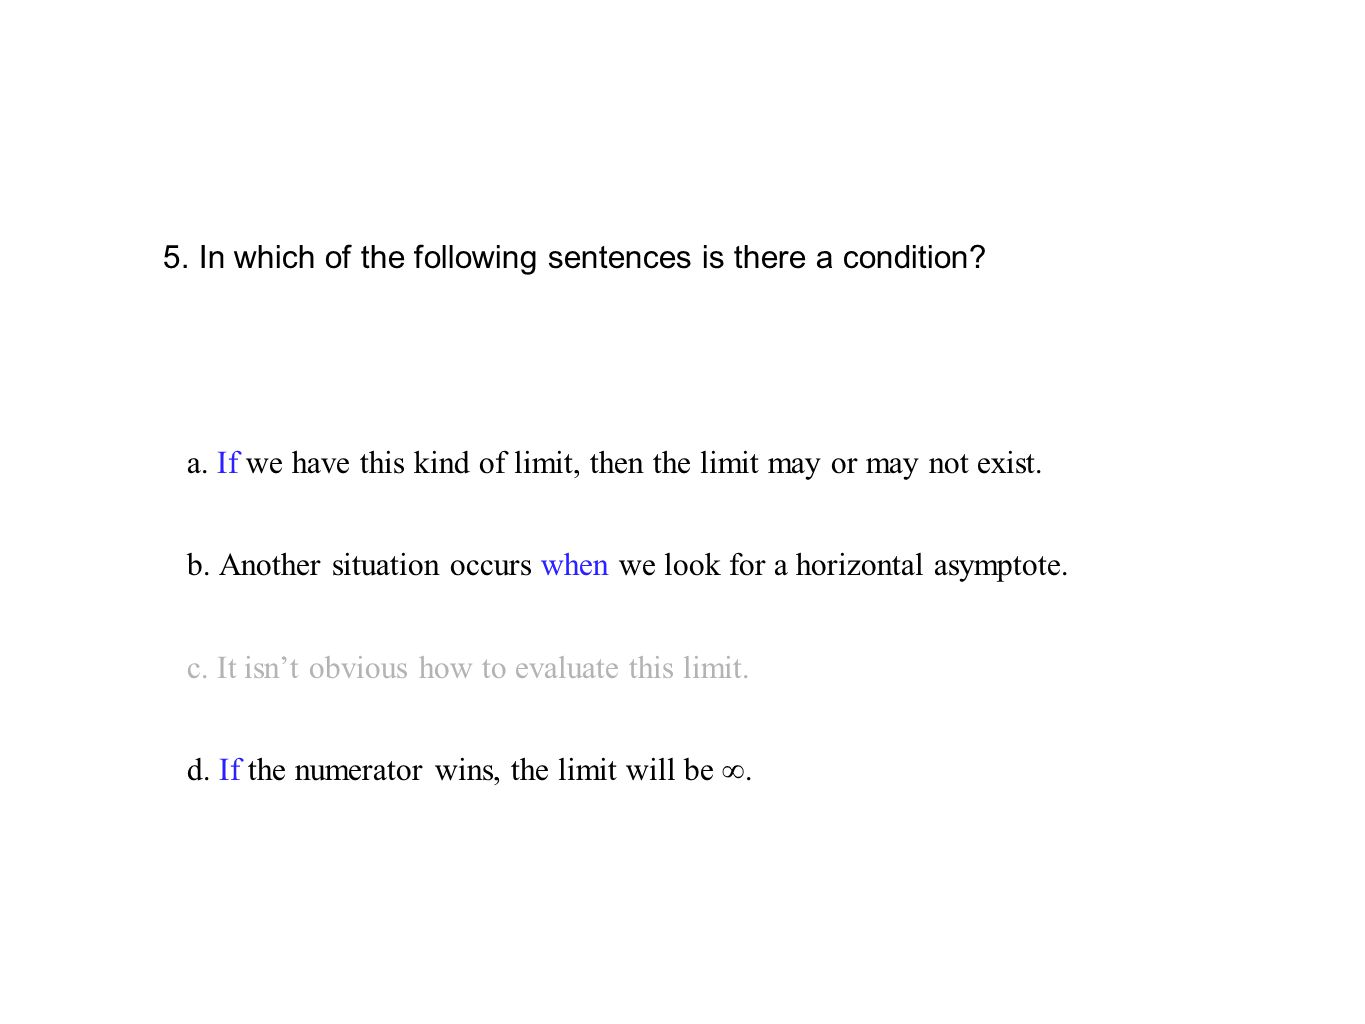 5. In which of the following sentences is there a condition? a. If we have this kind of limit, then the limit may or may not exist. b. Another situati